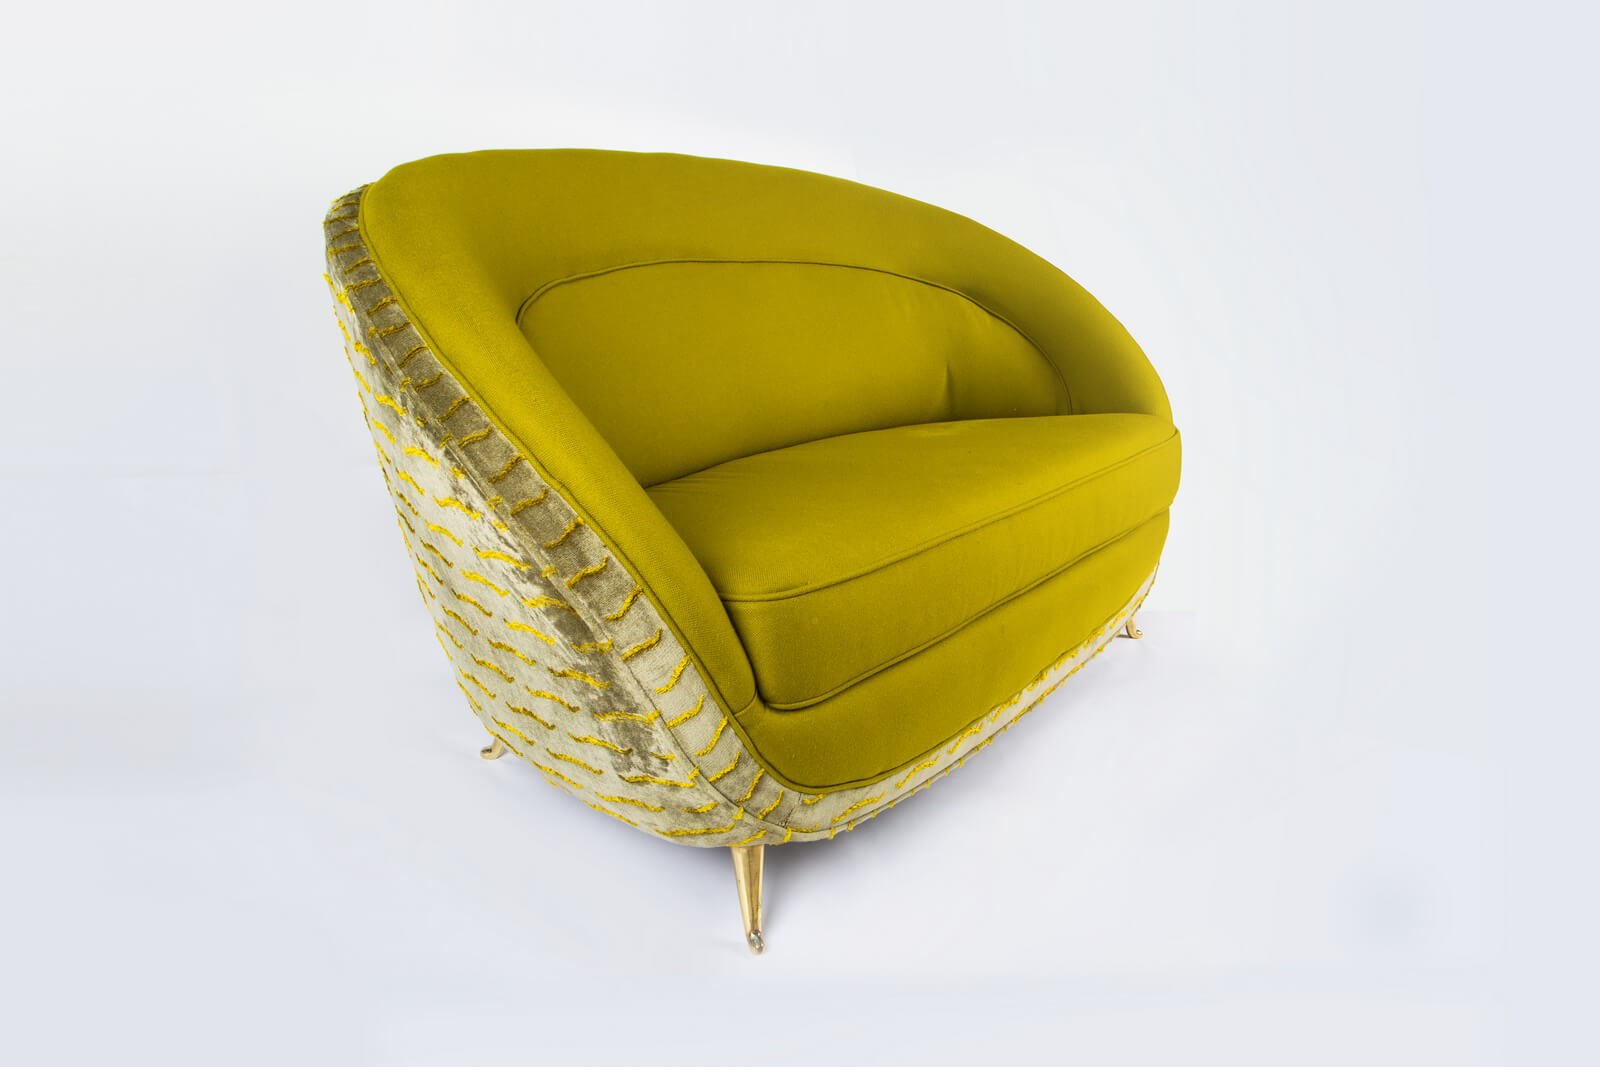 Sofa by Guglielmo Veronesi for sale